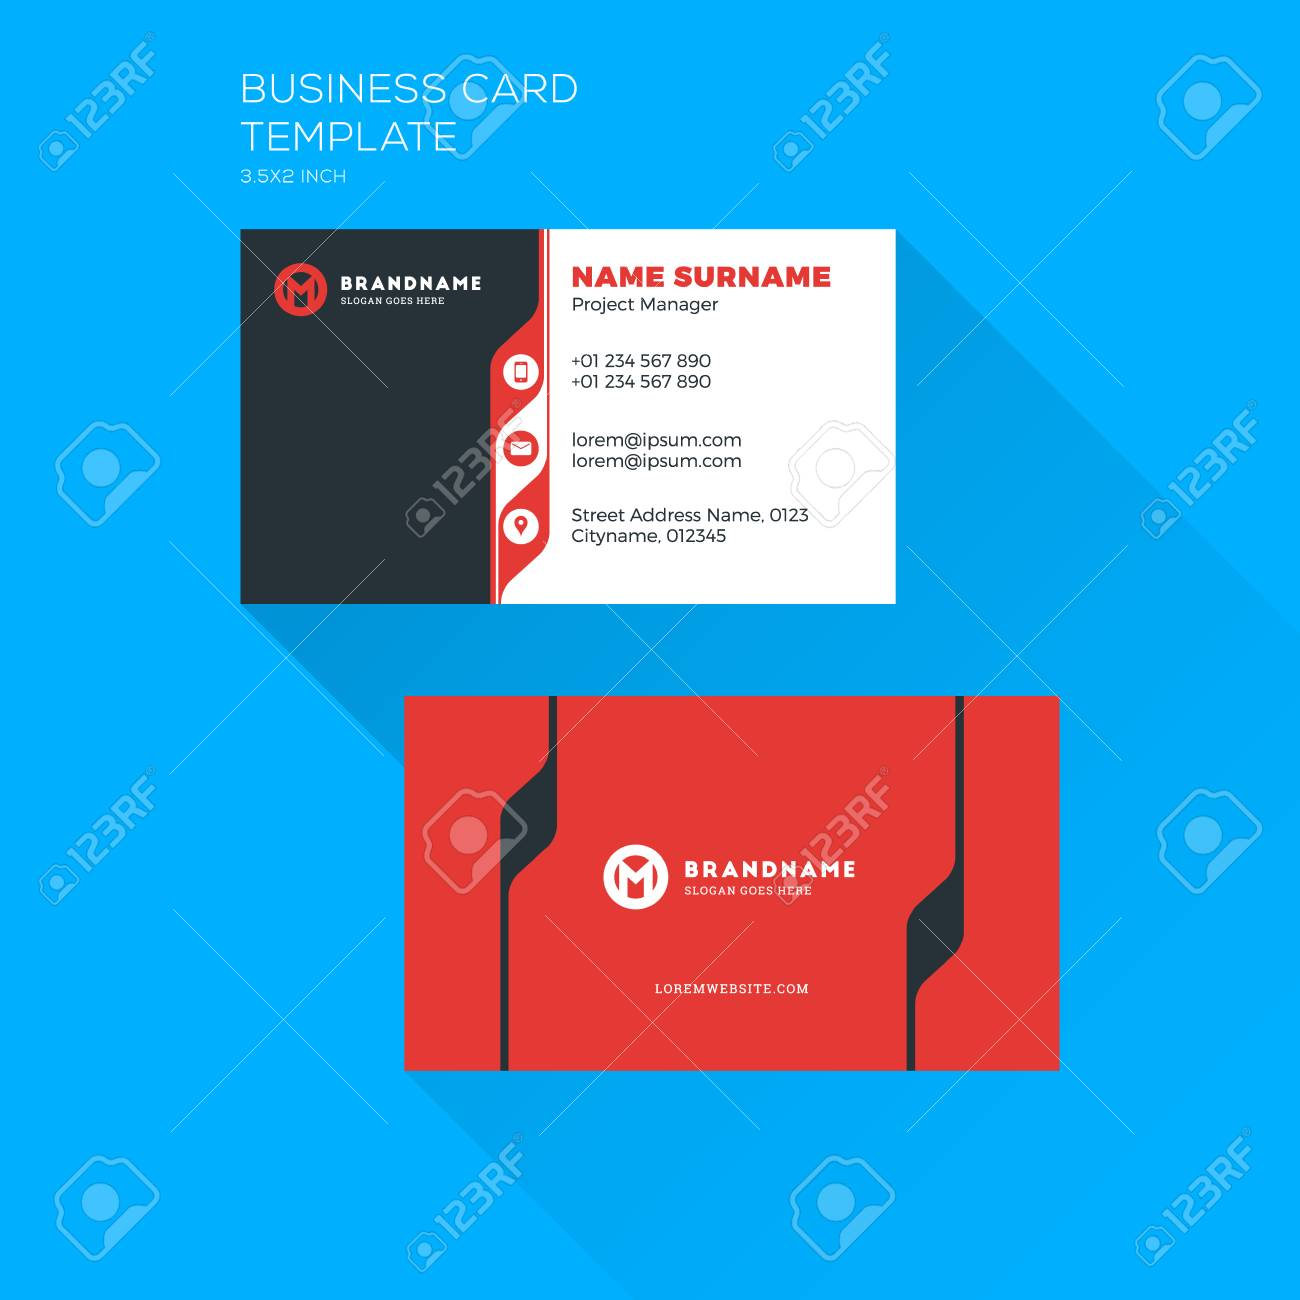 Corporate business card print template personal visiting card corporate business card print template personal visiting card with company logo clean flat stationery fbccfo